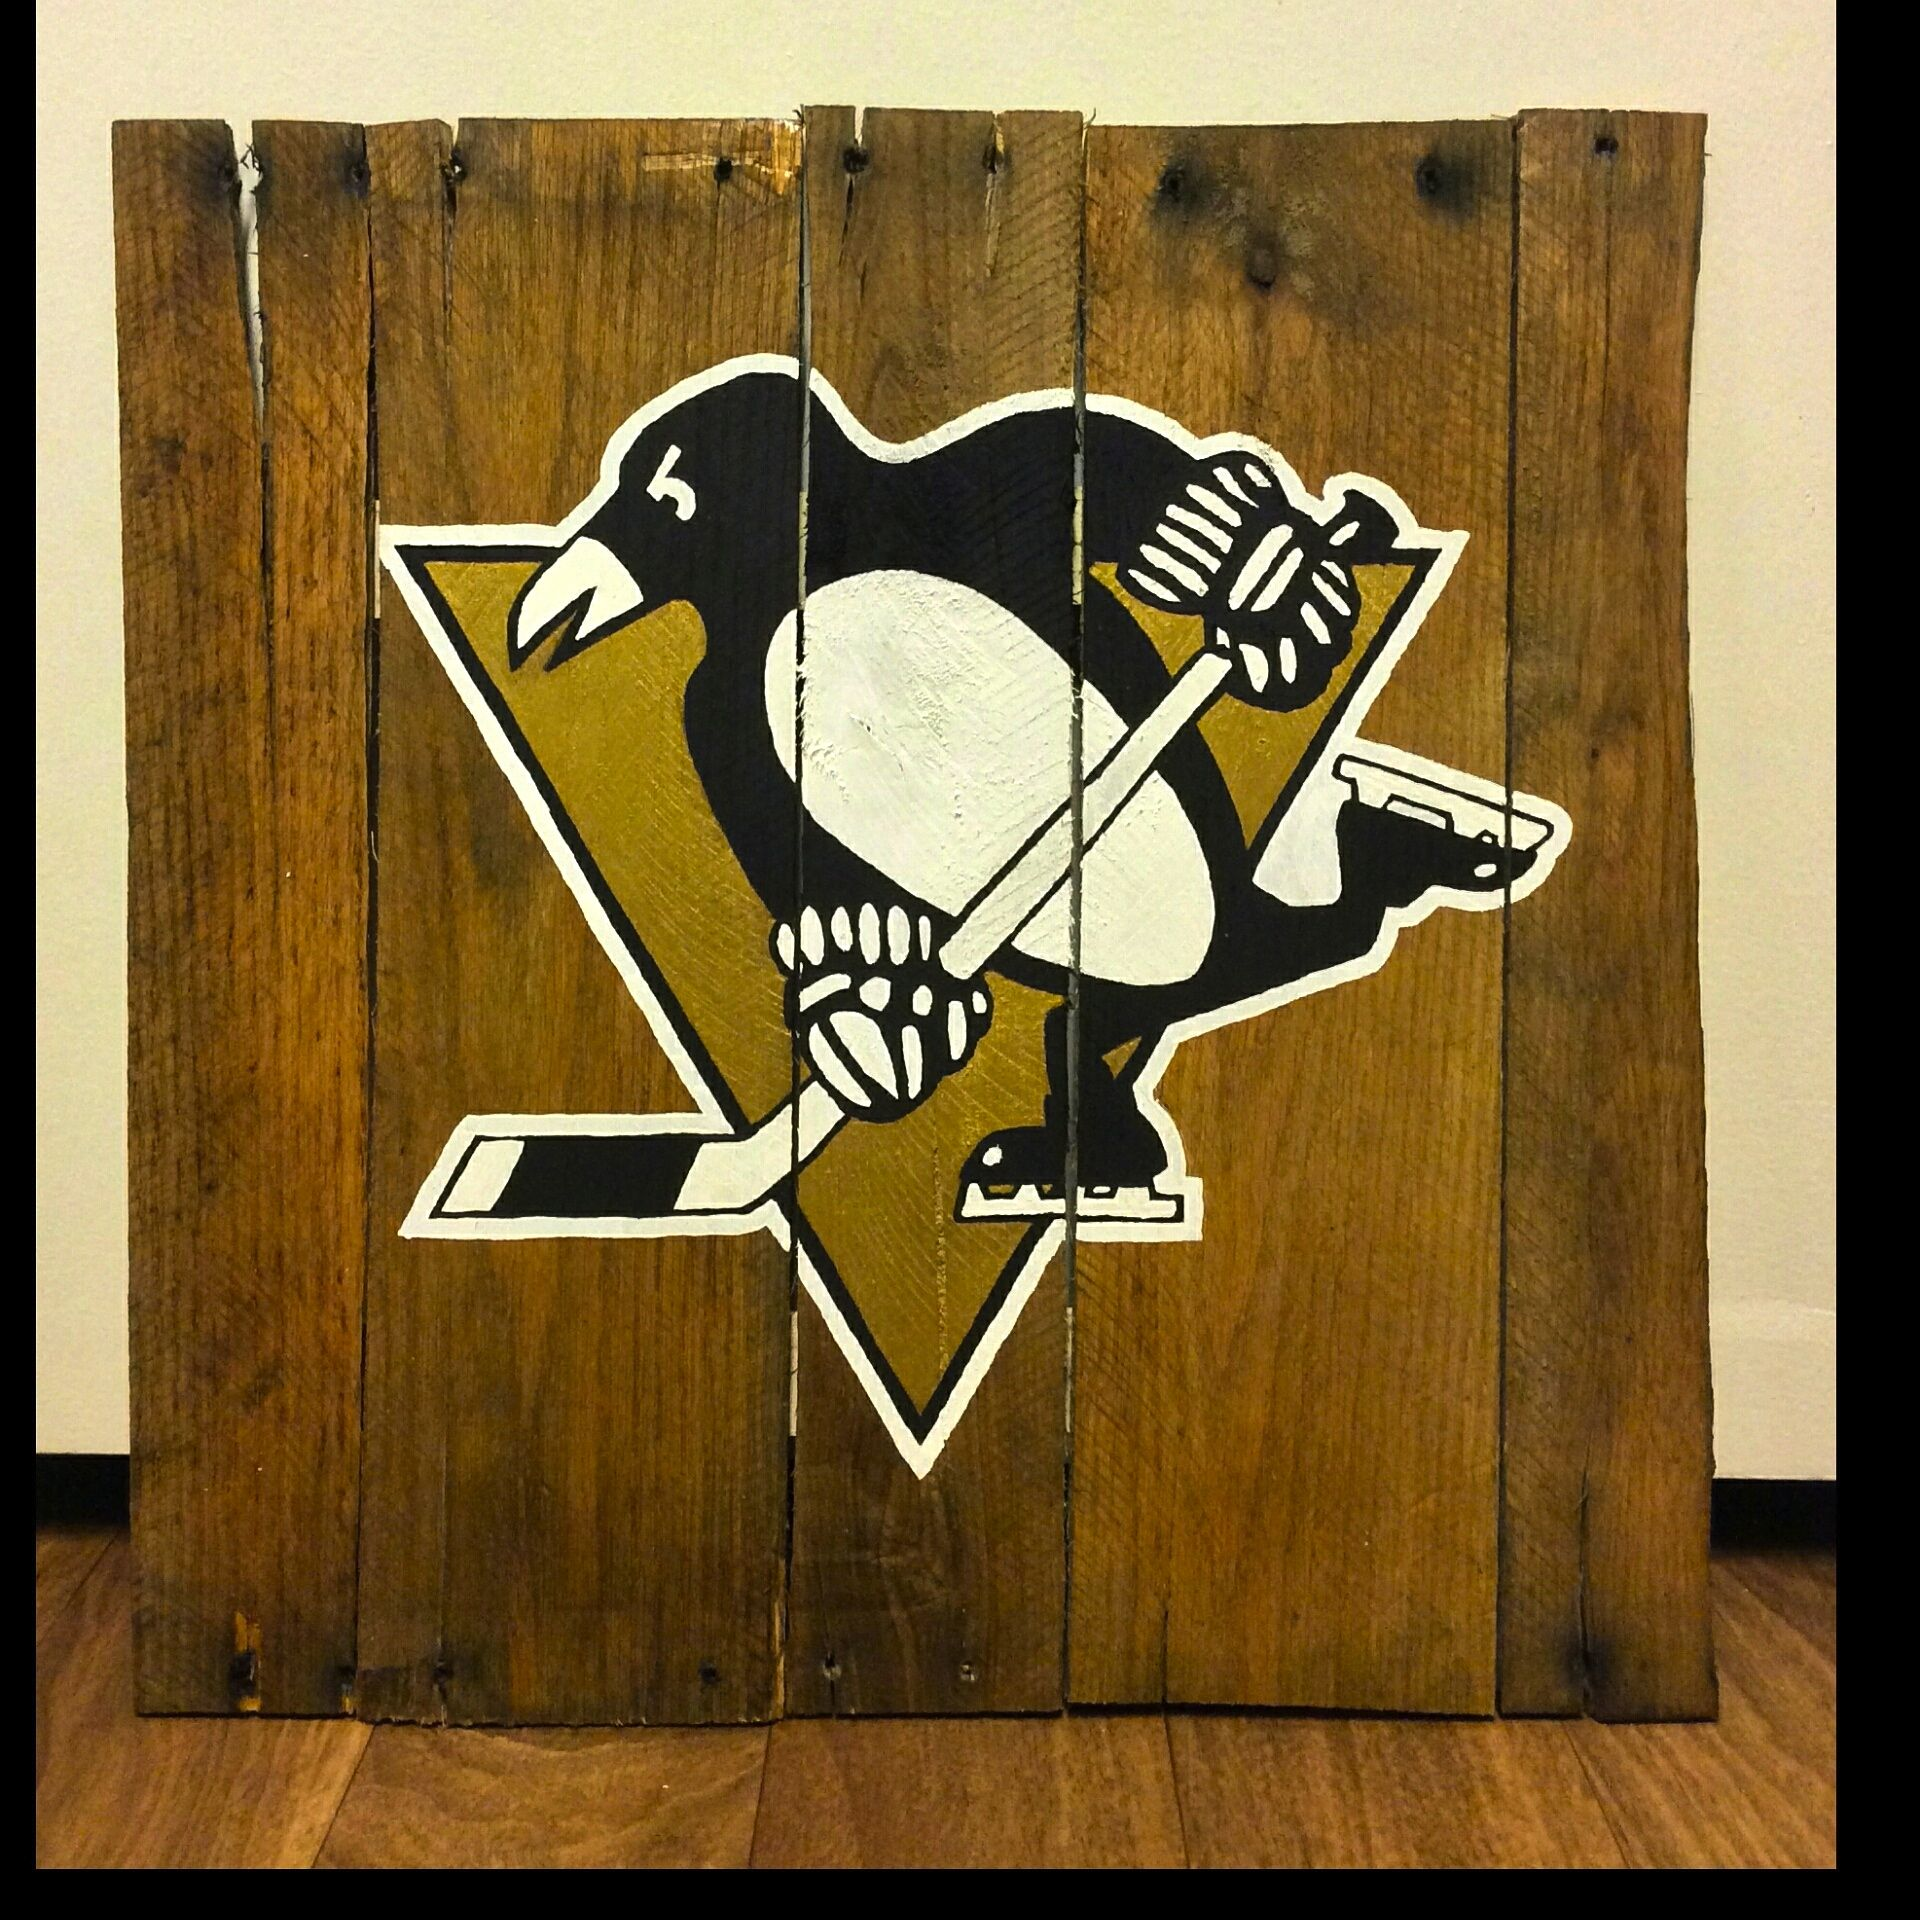 Pin By Jonesy Pallets On Sports Logos Pallet Art